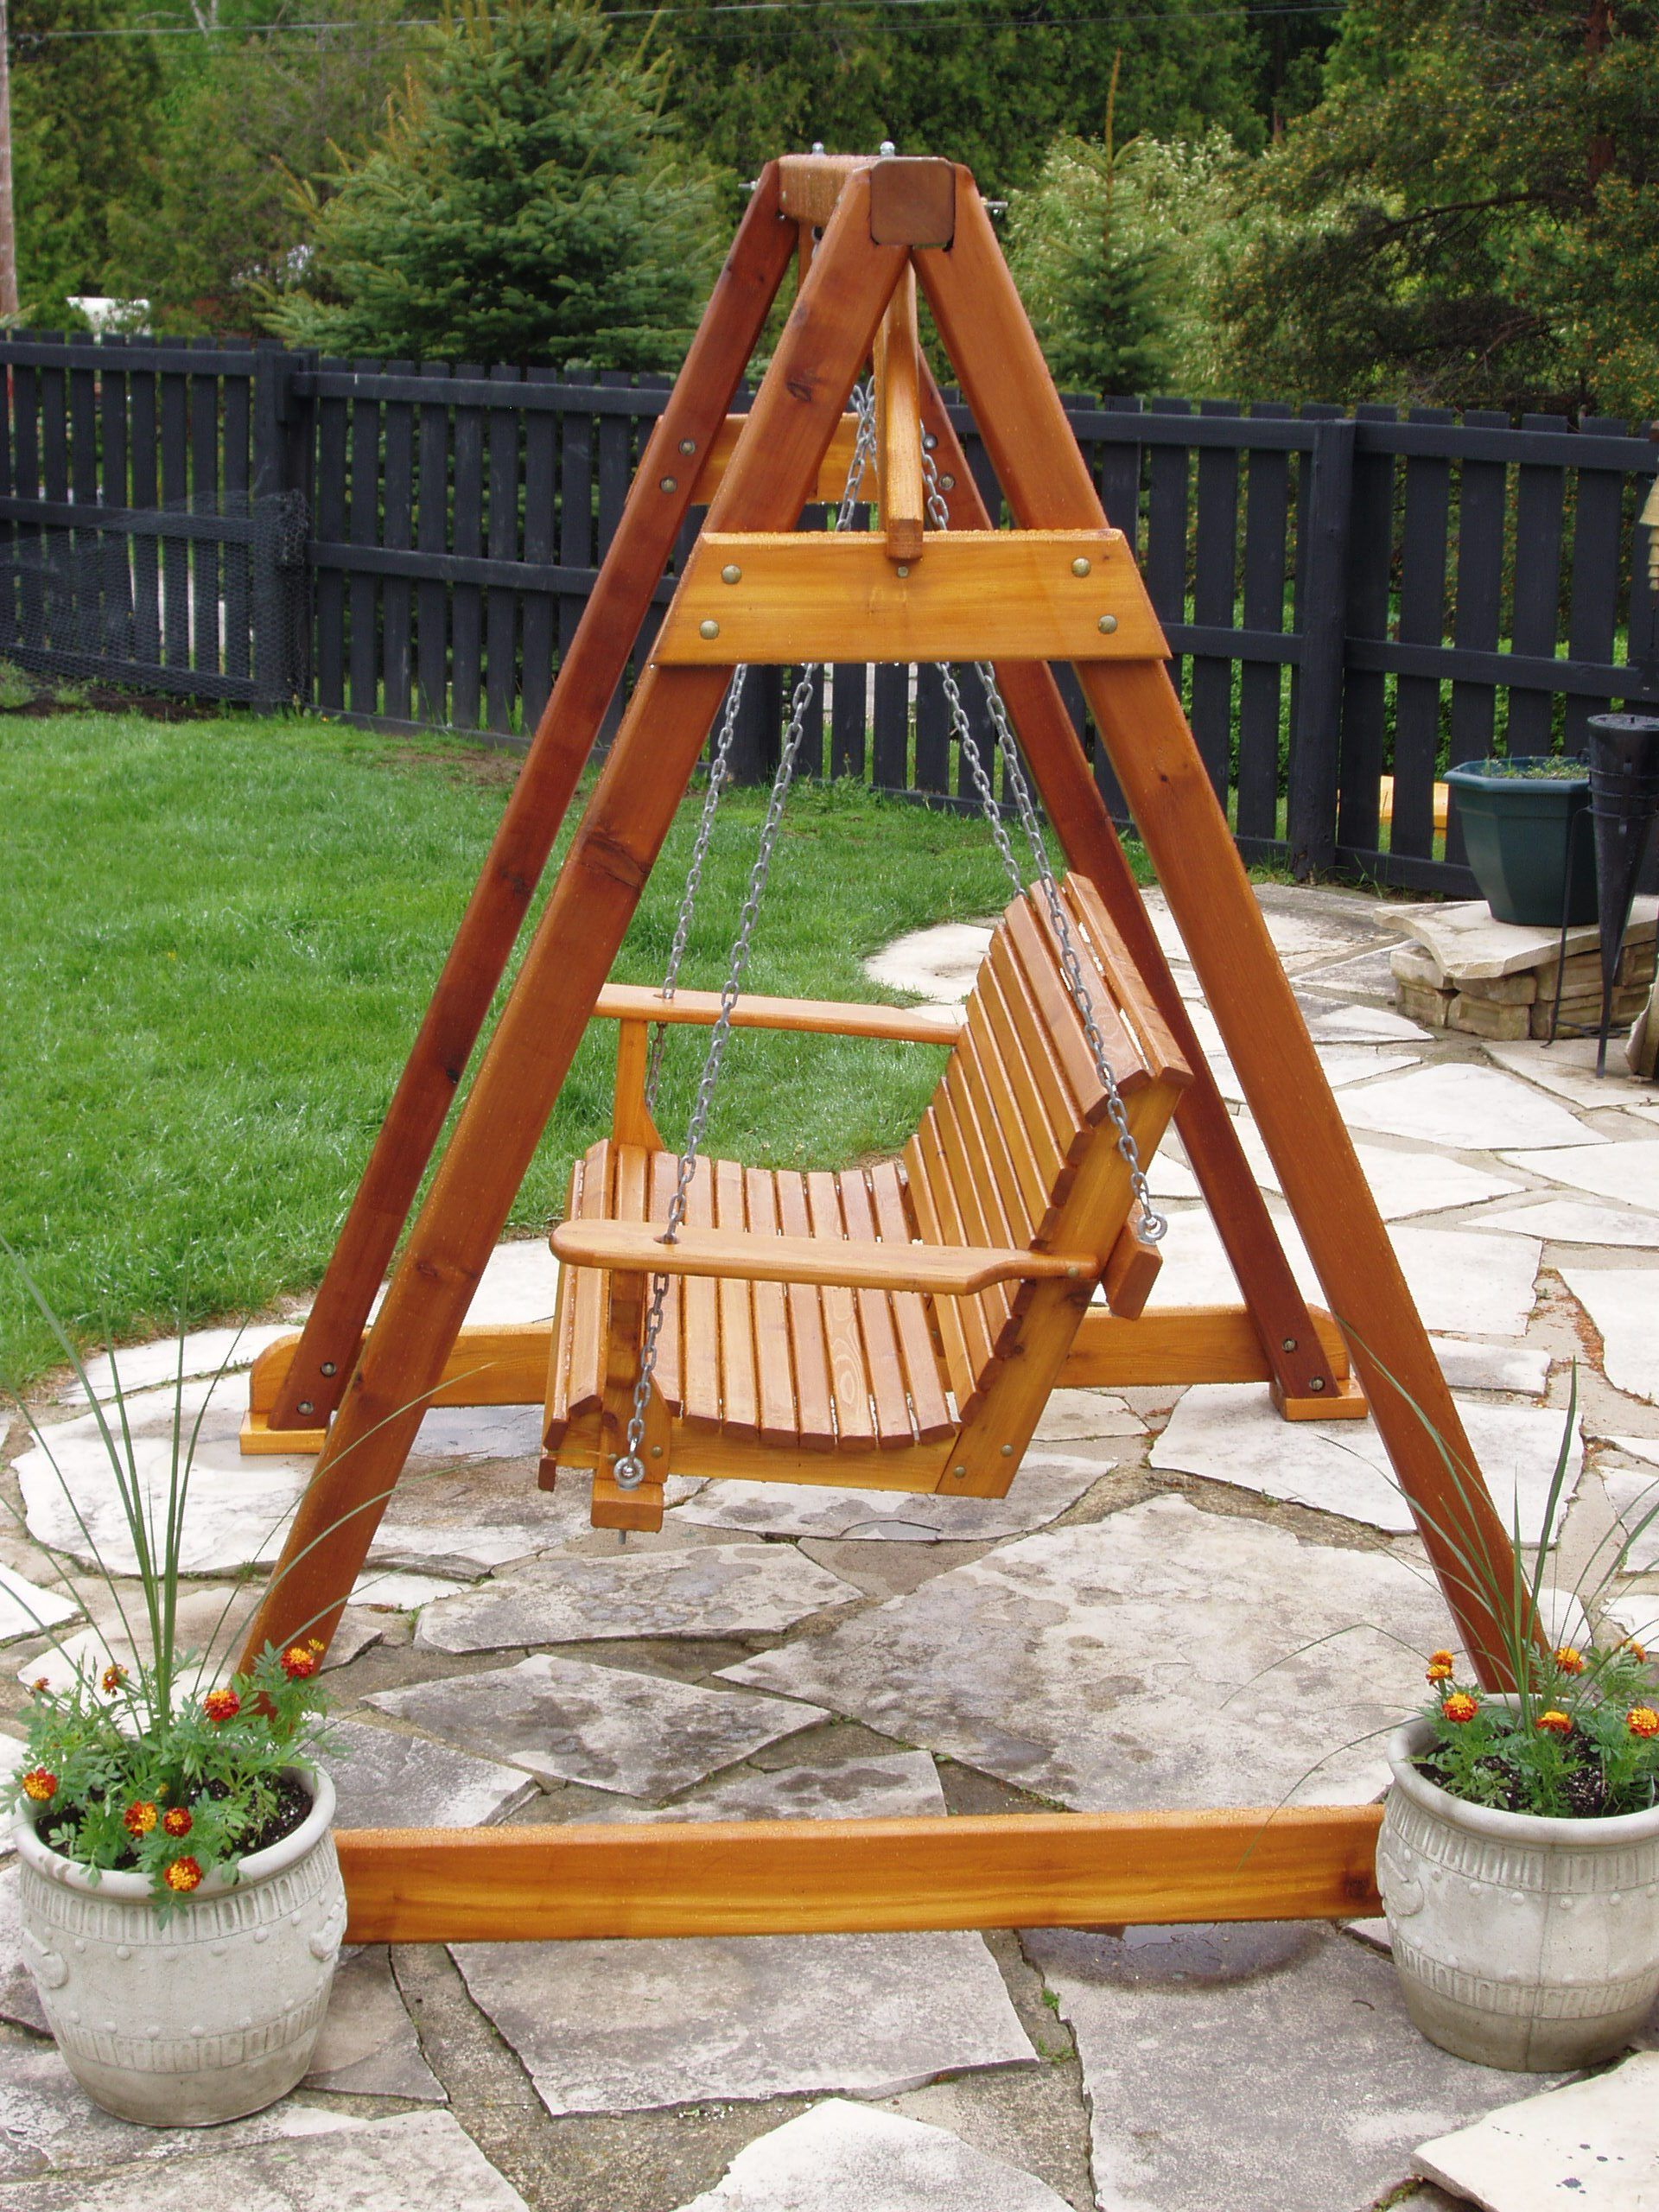 Patio Porch Swings With Stand Regarding Most Current Build Diy How To Build A Frame Porch Swing Stand Pdf Plans (View 9 of 25)